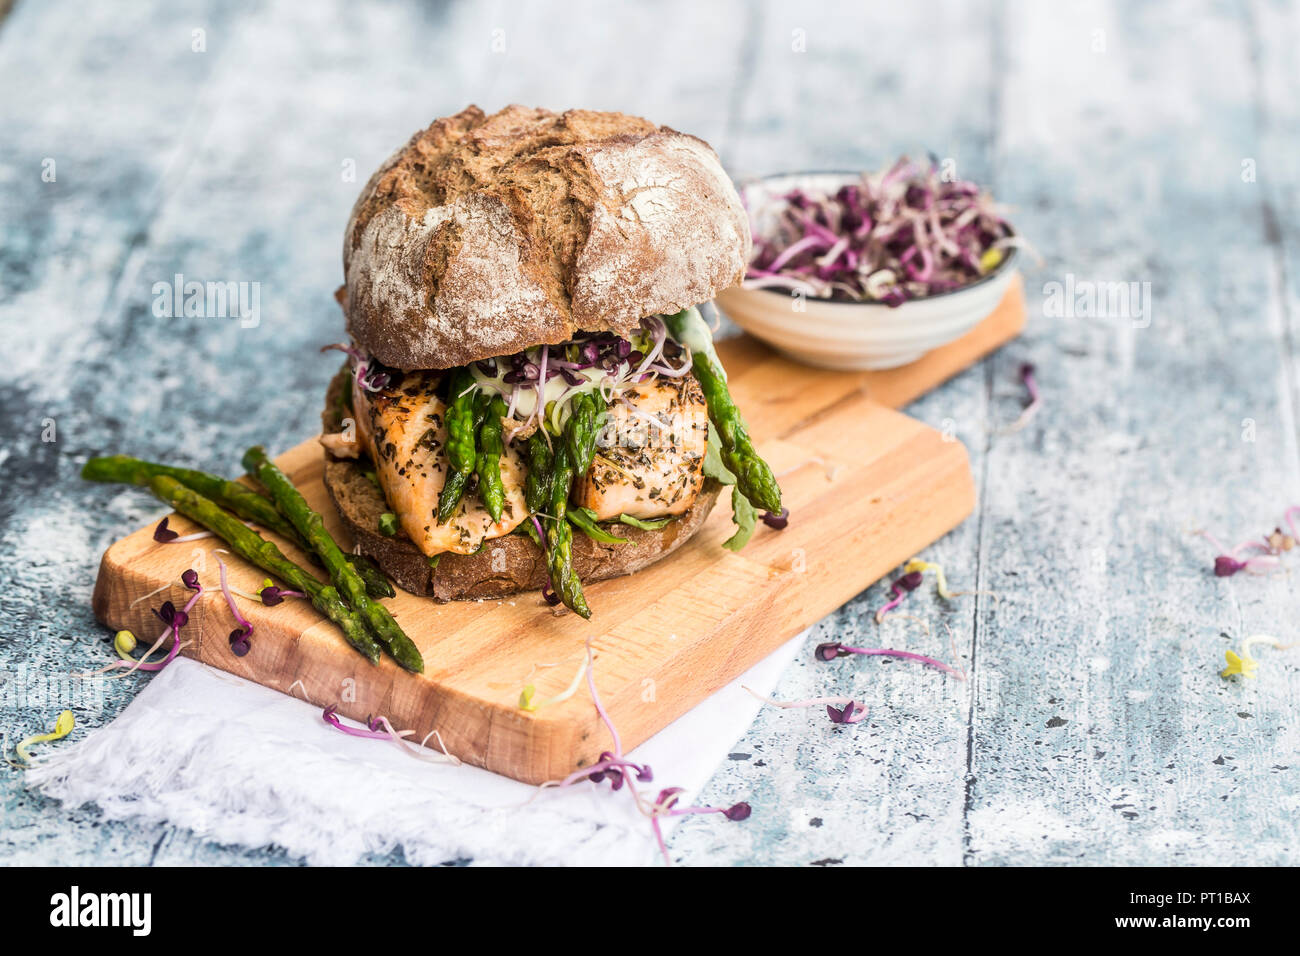 Salmon burger with green asparagus and red cress on chopping board - Stock Image